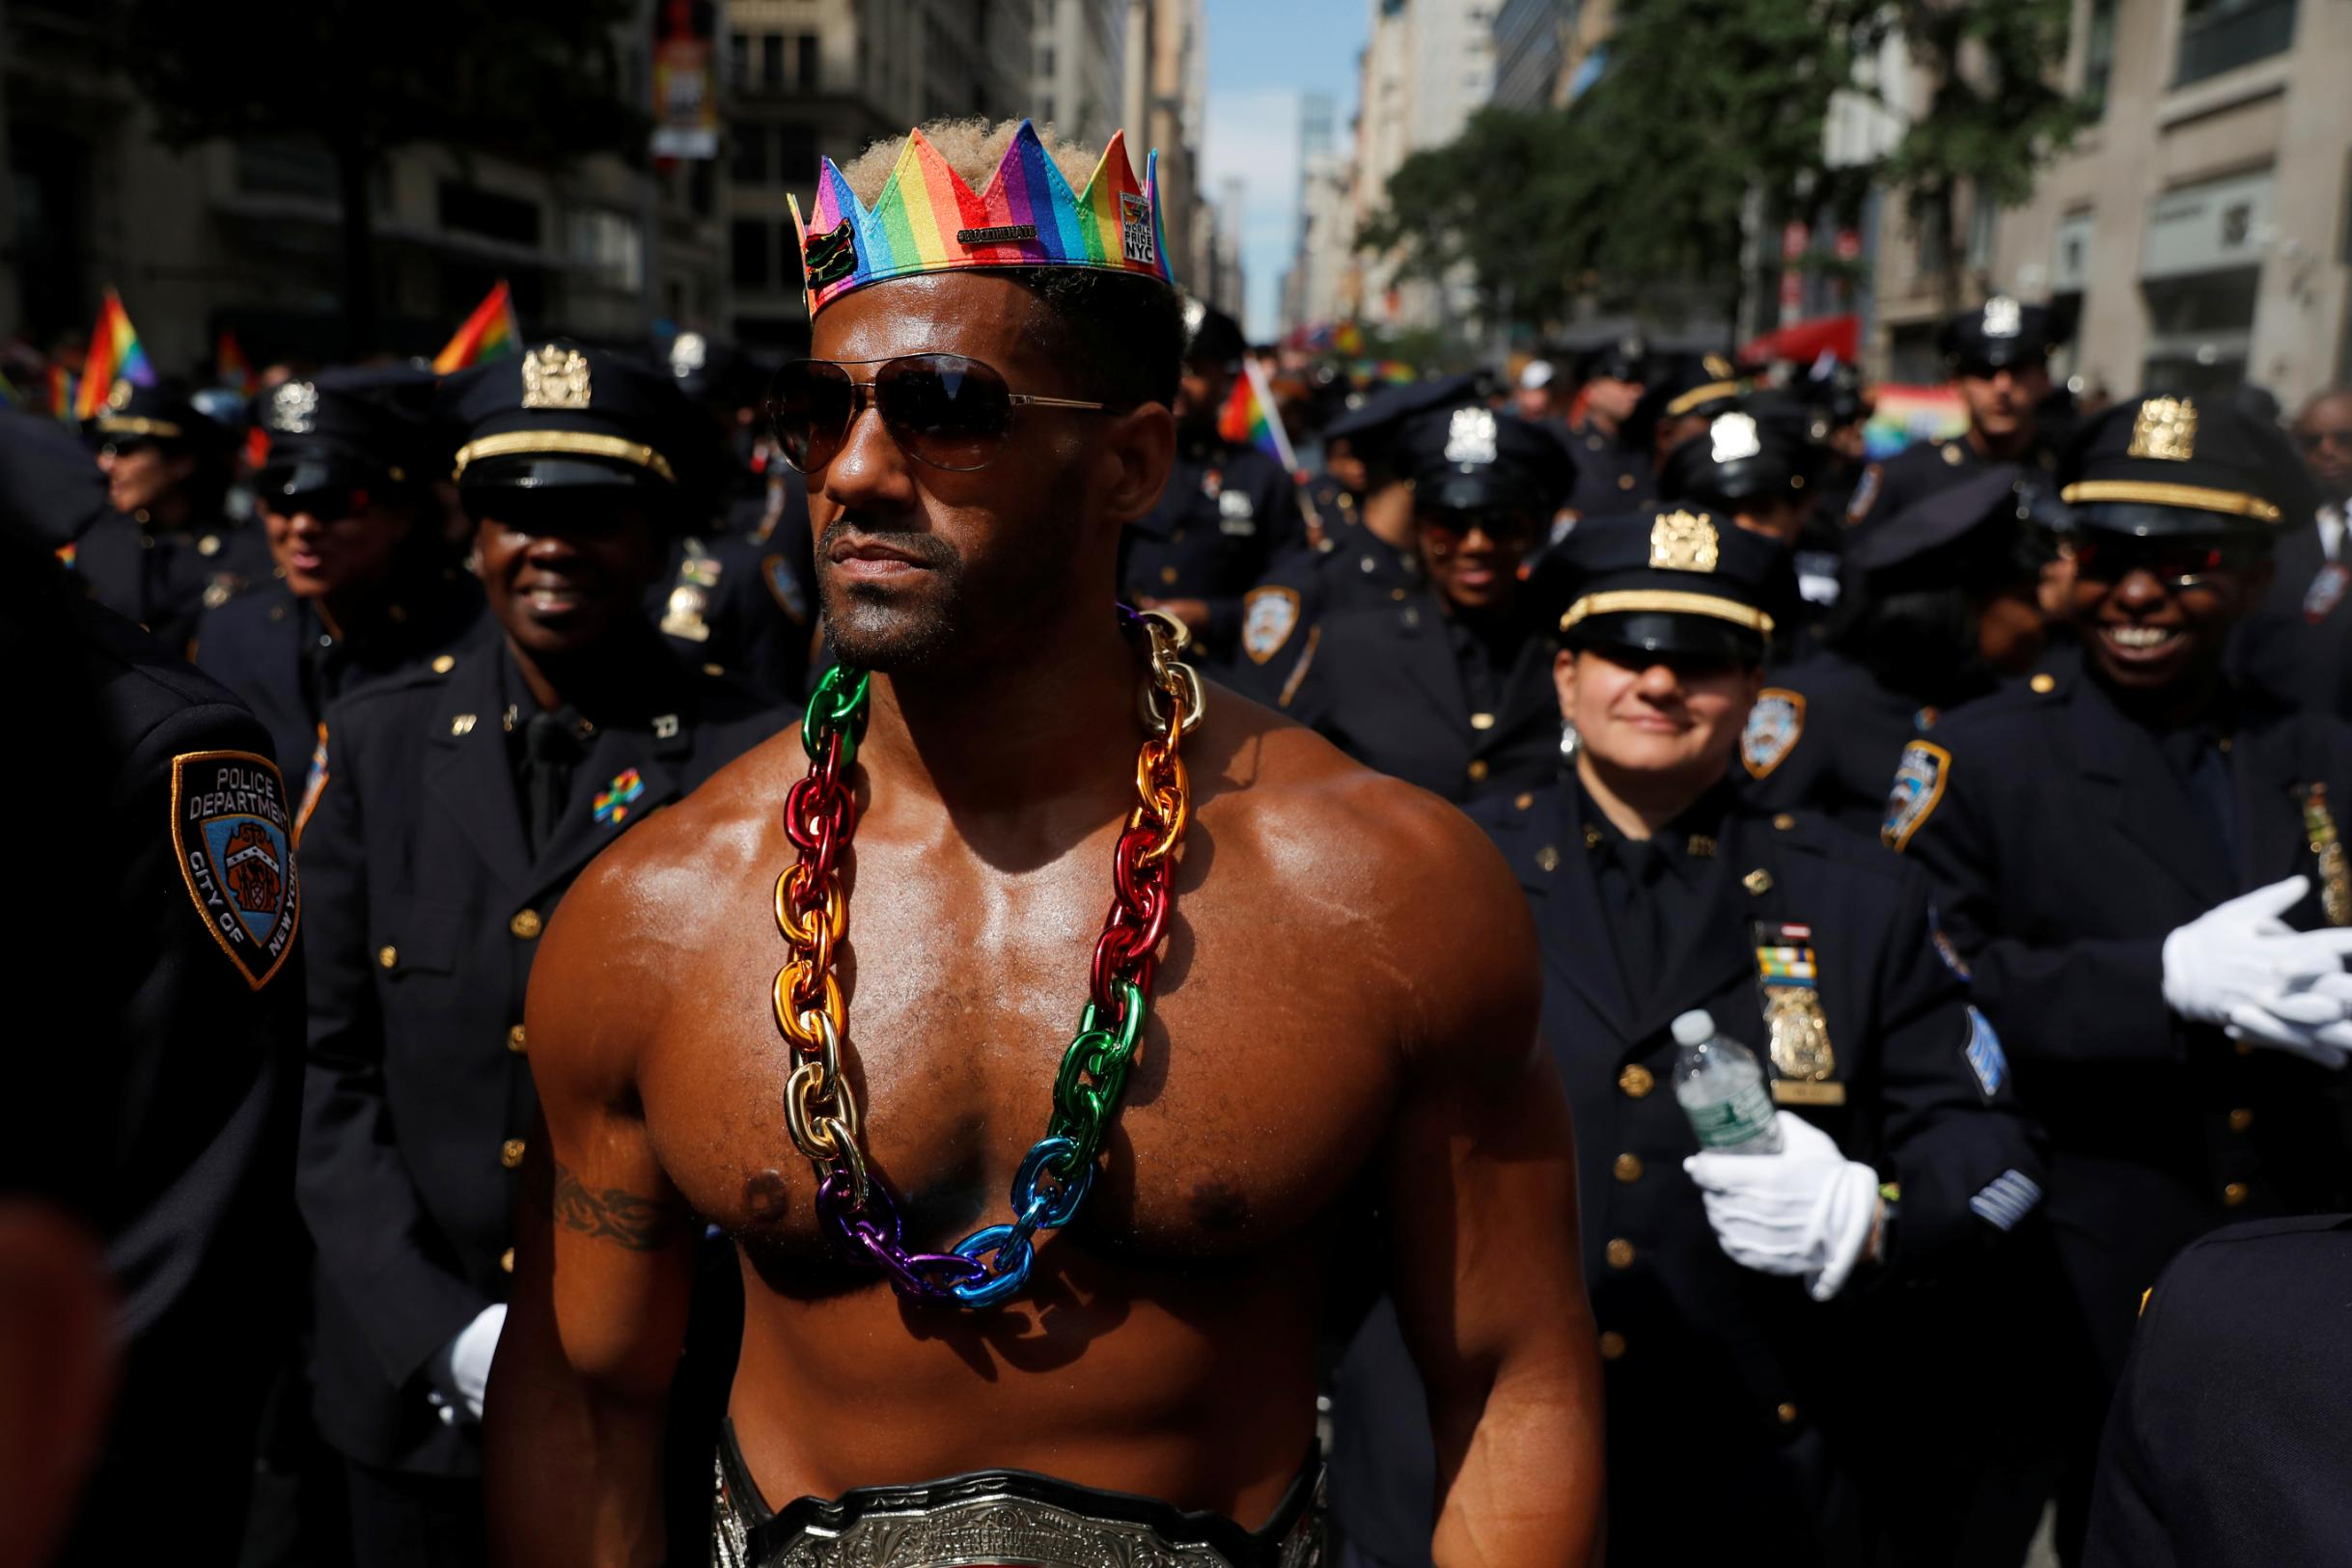 NYC Pride parade organizers ban the NYPD from its events until 2025